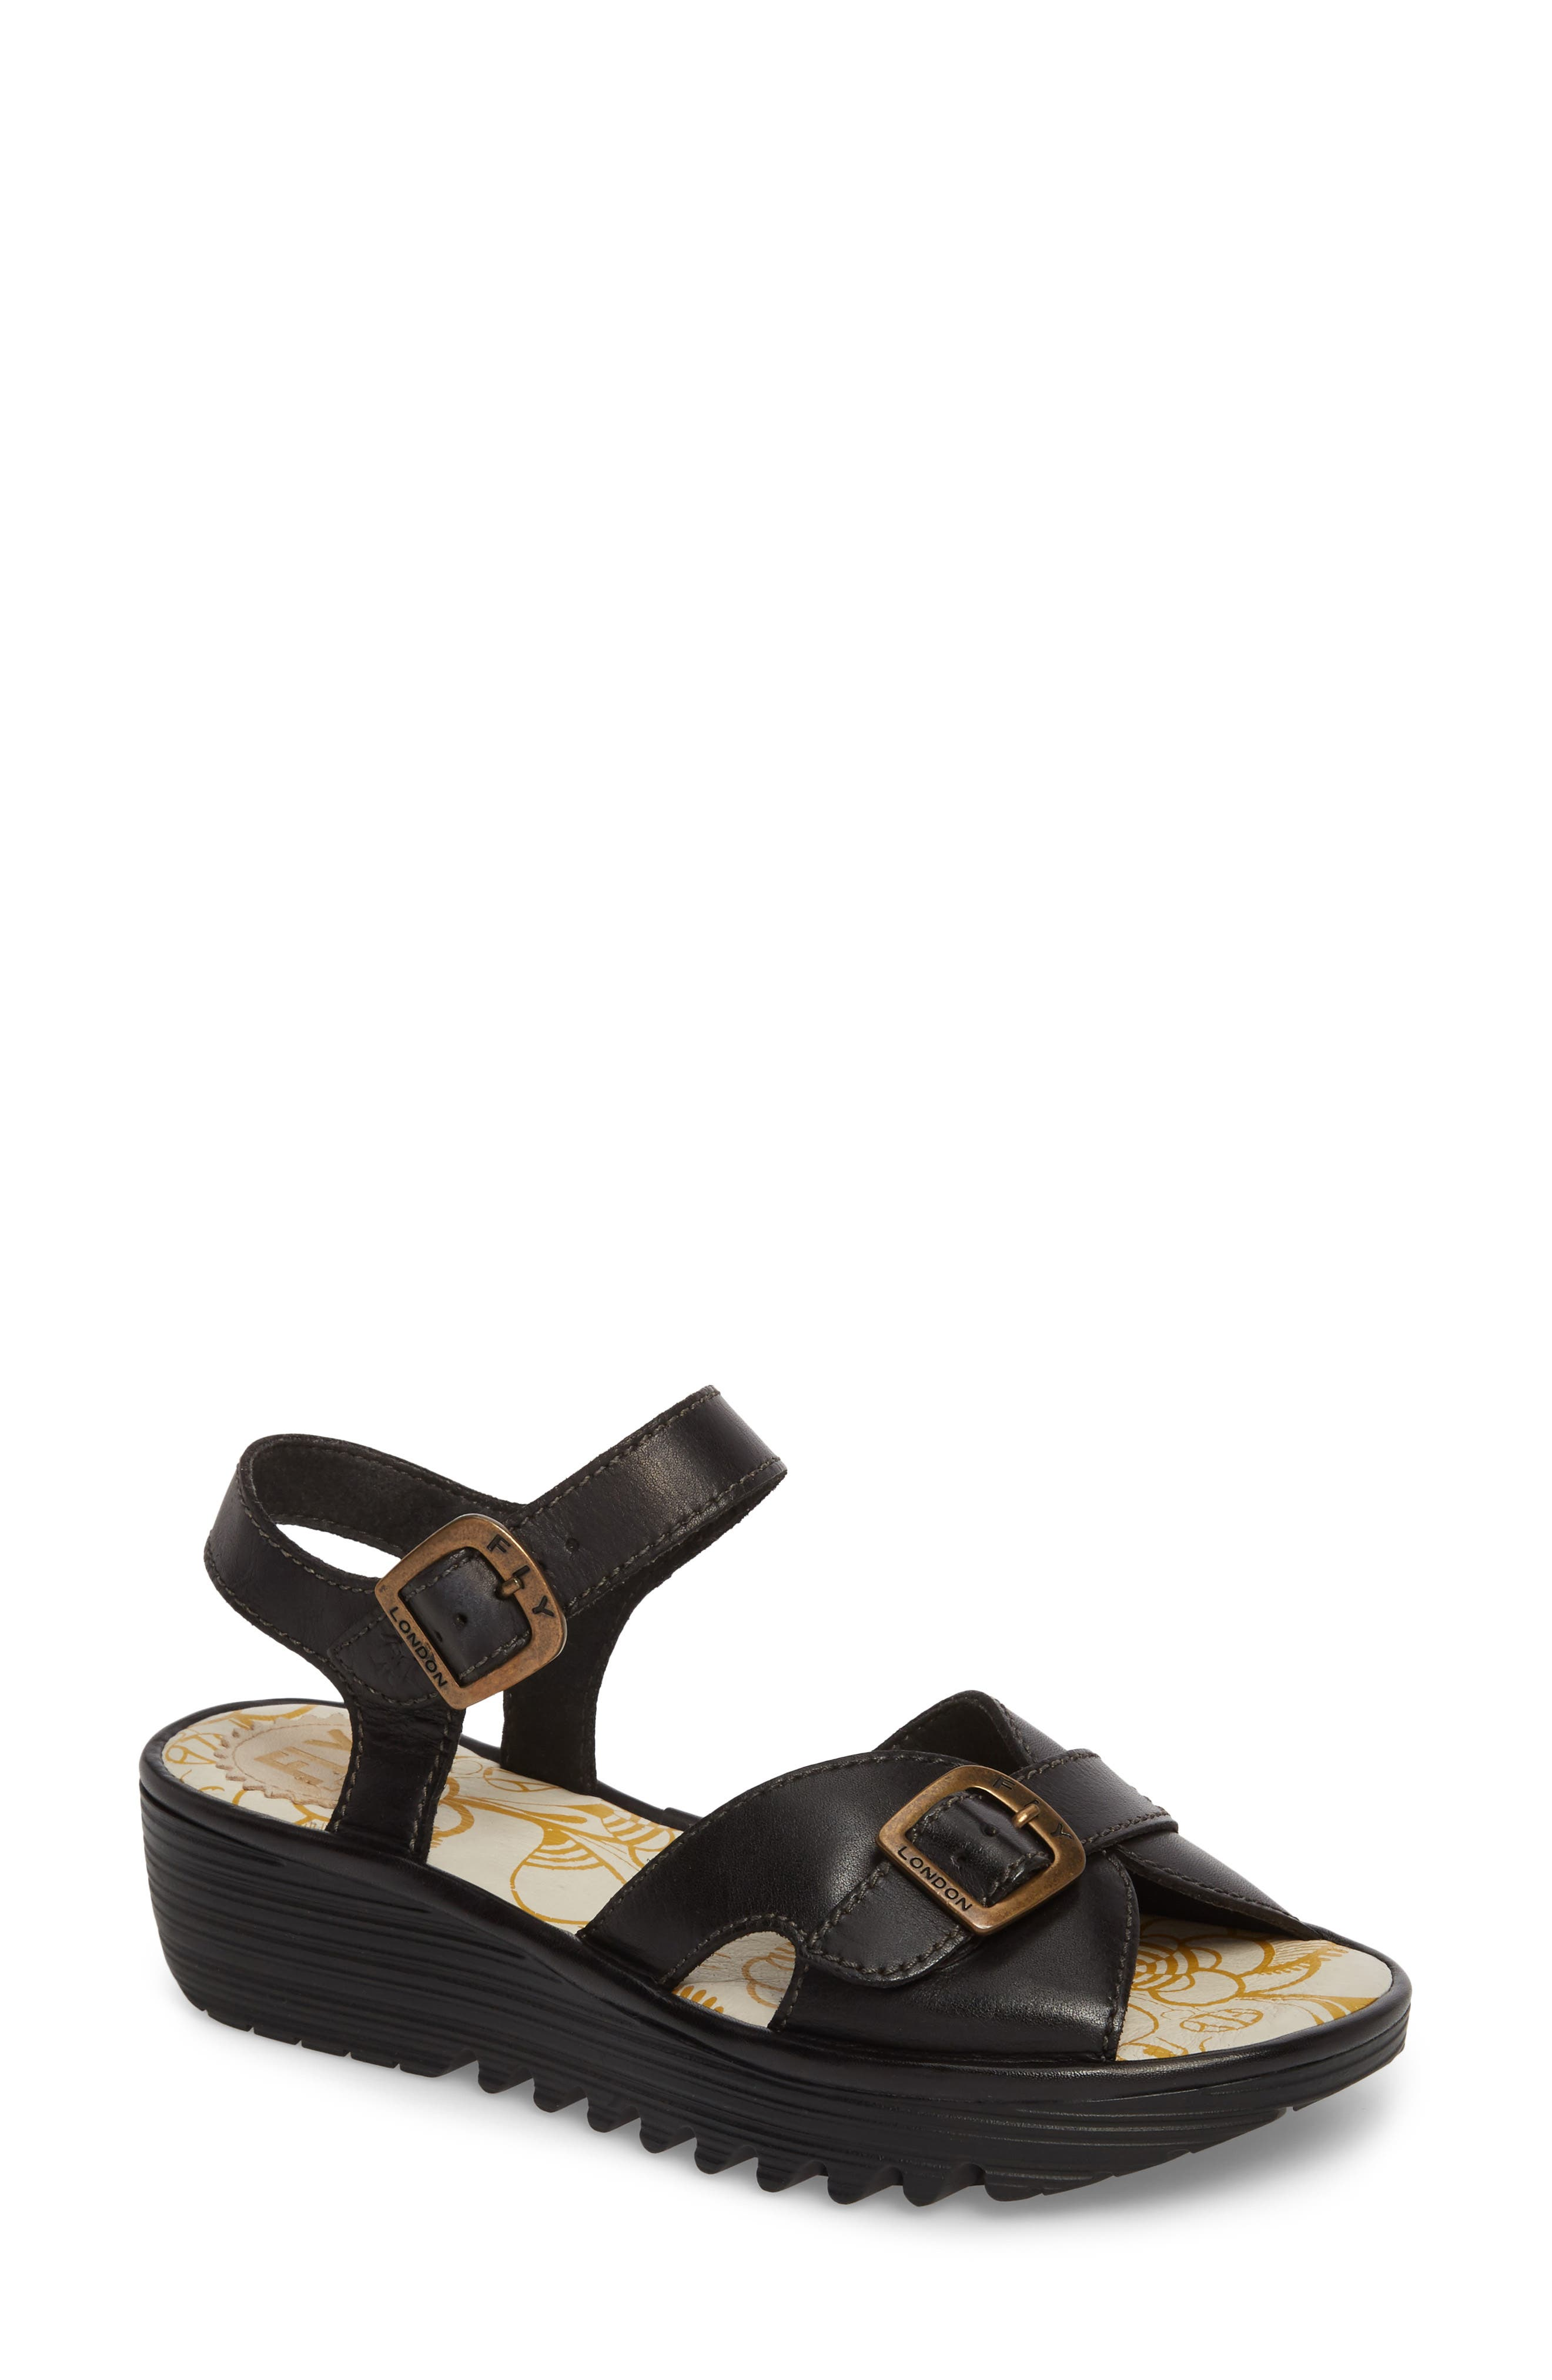 Fly London Egal Sandal - Black